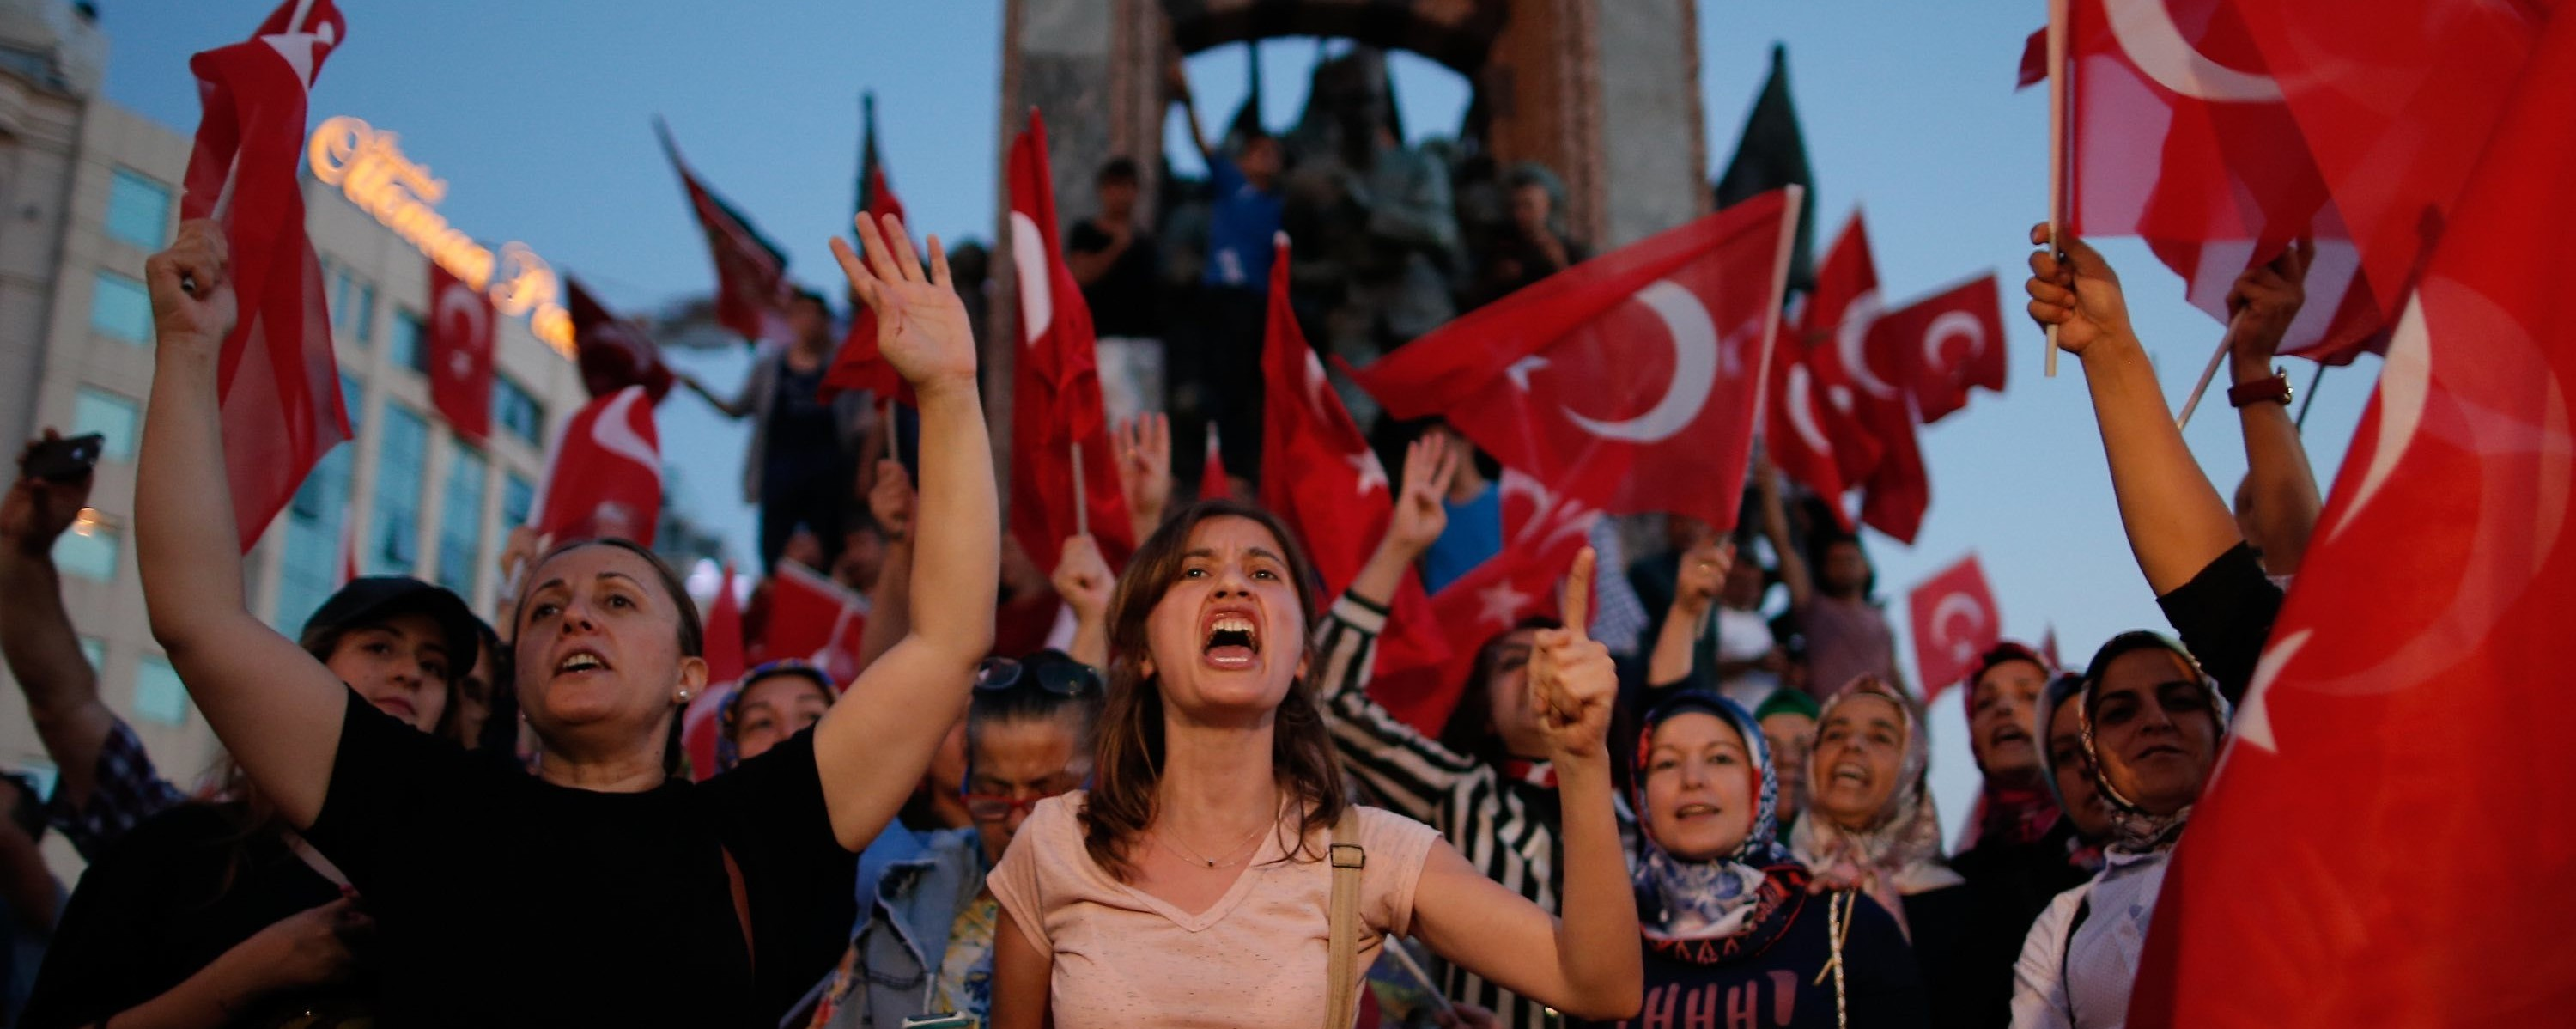 an analysis of the attempted coup in turkey The consequences of the failed coup d'état in turkey are already visible,  especially in domestic policy there is broad consensus that the president and.